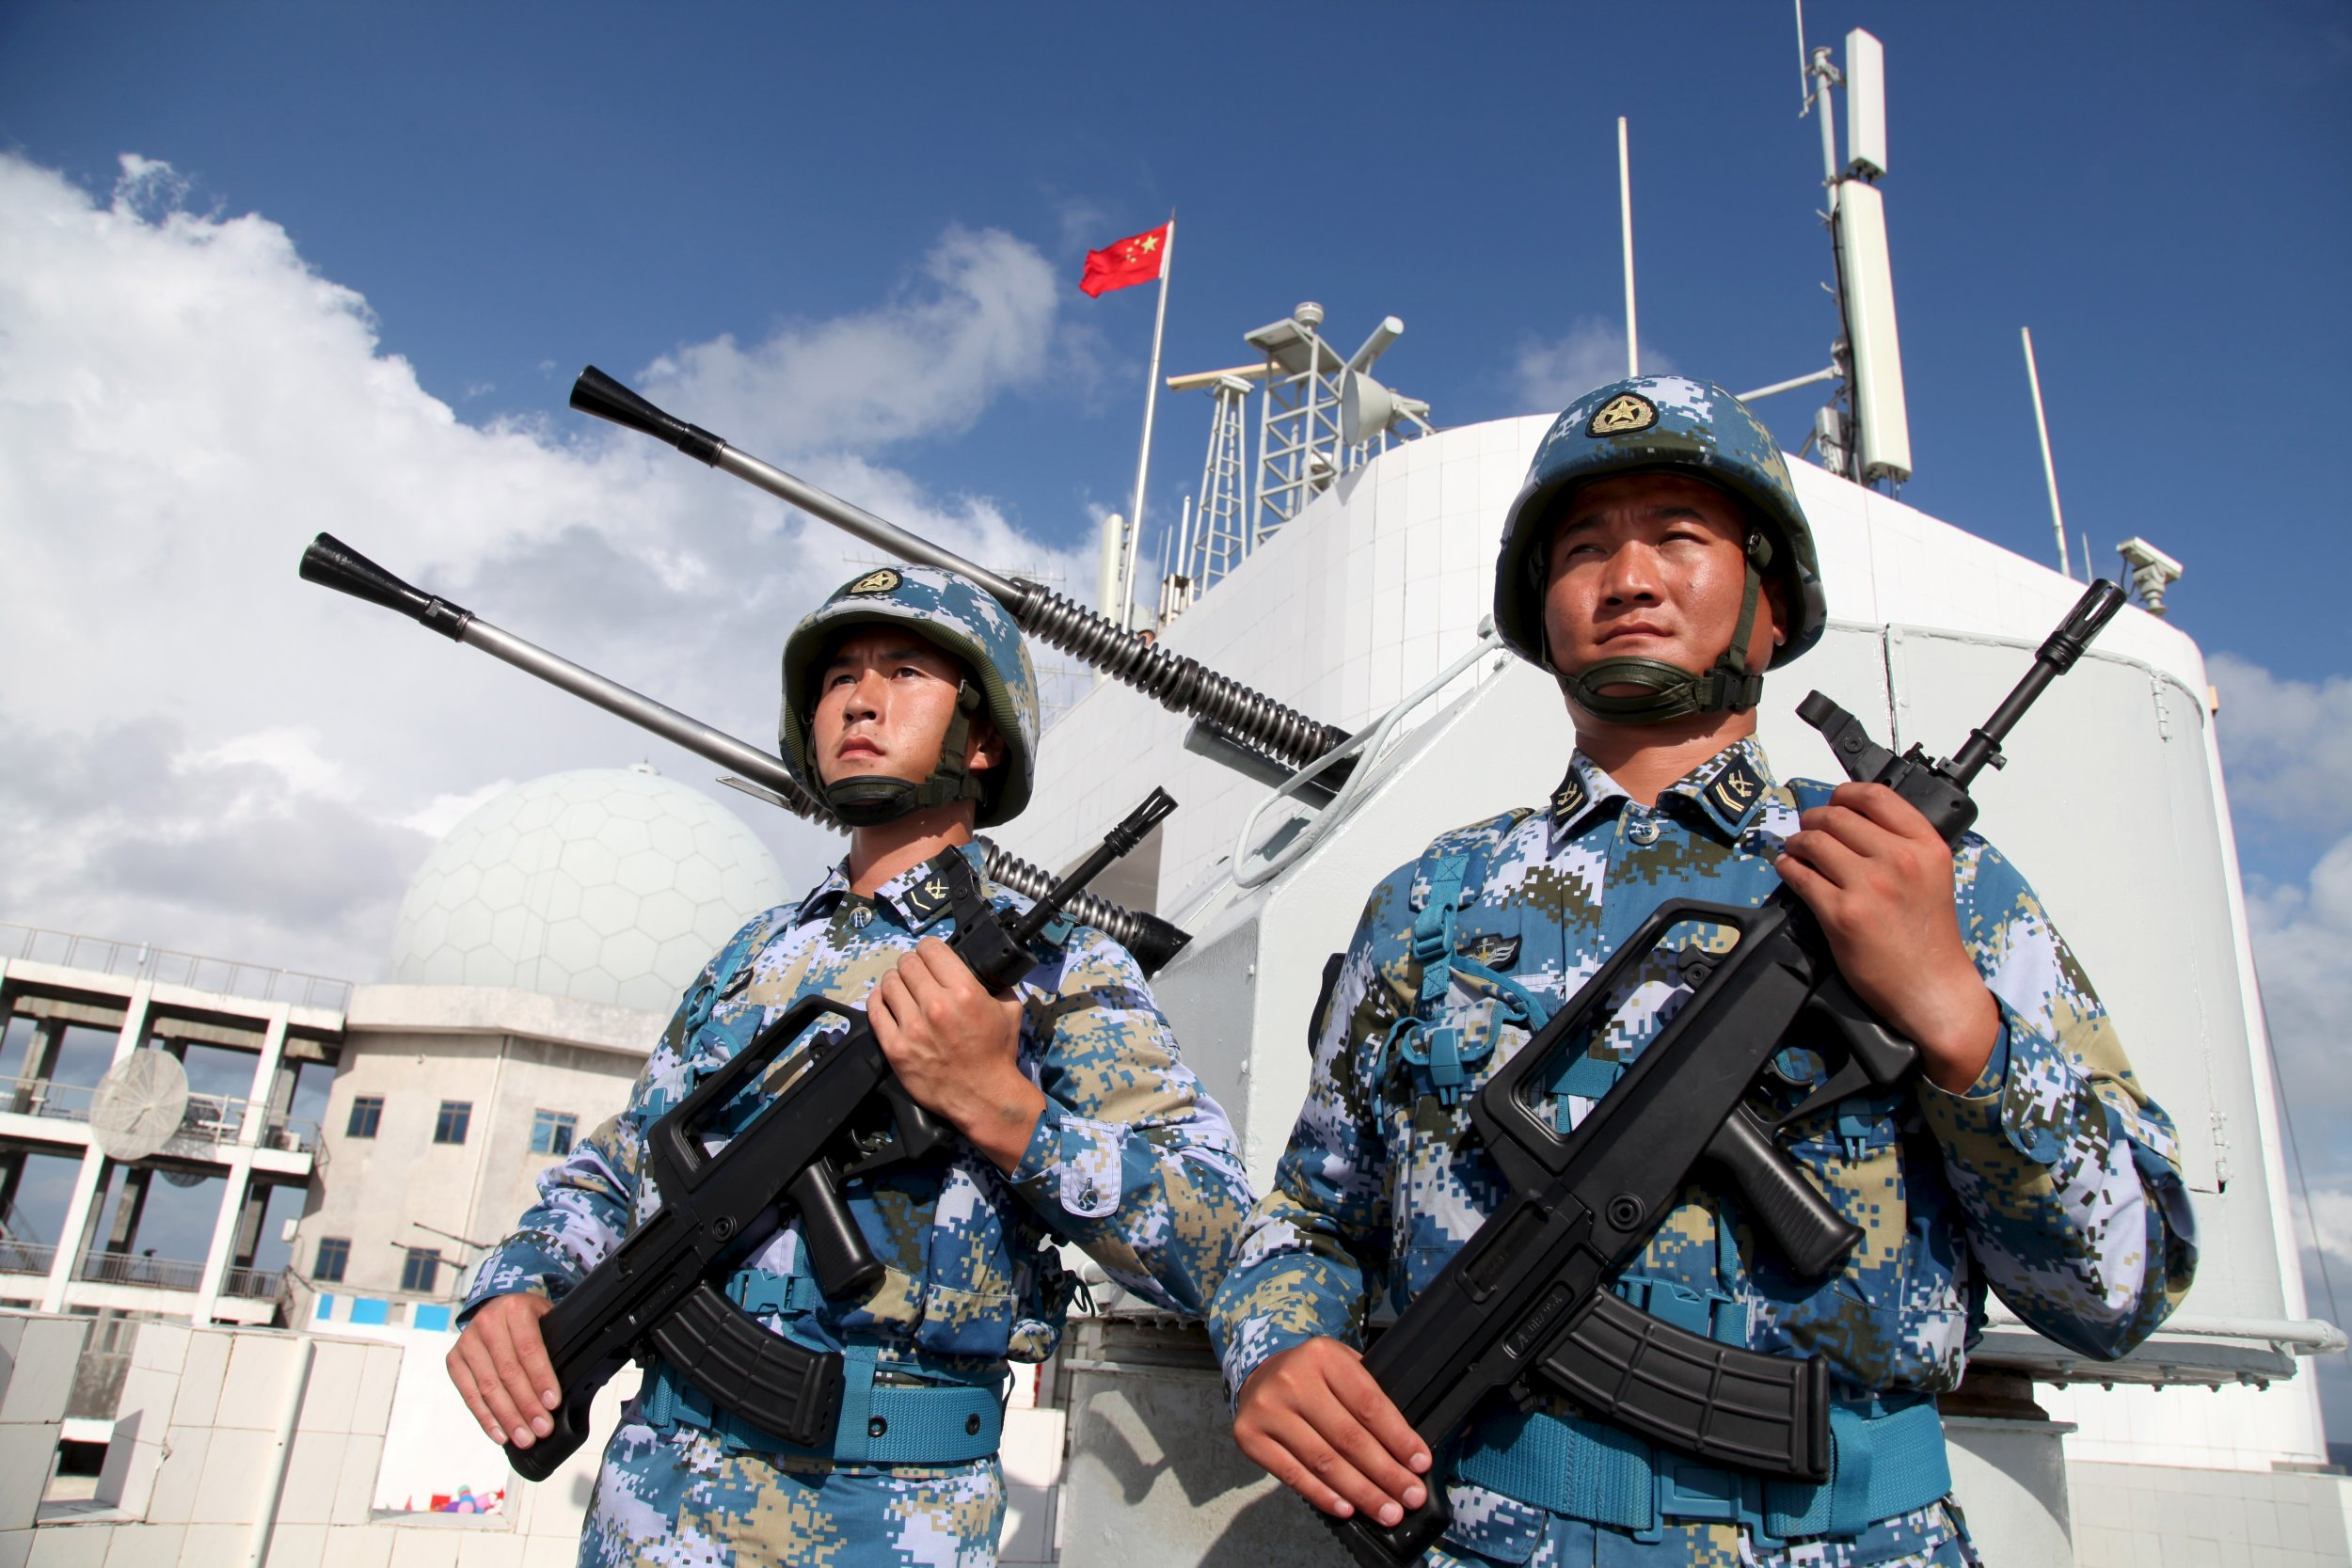 https://i2.wp.com/s.newsweek.com/sites/www.newsweek.com/files/styles/full/public/2016/03/02/philippines-says-china-blocking-access-south-china-sea-atoll..jpg